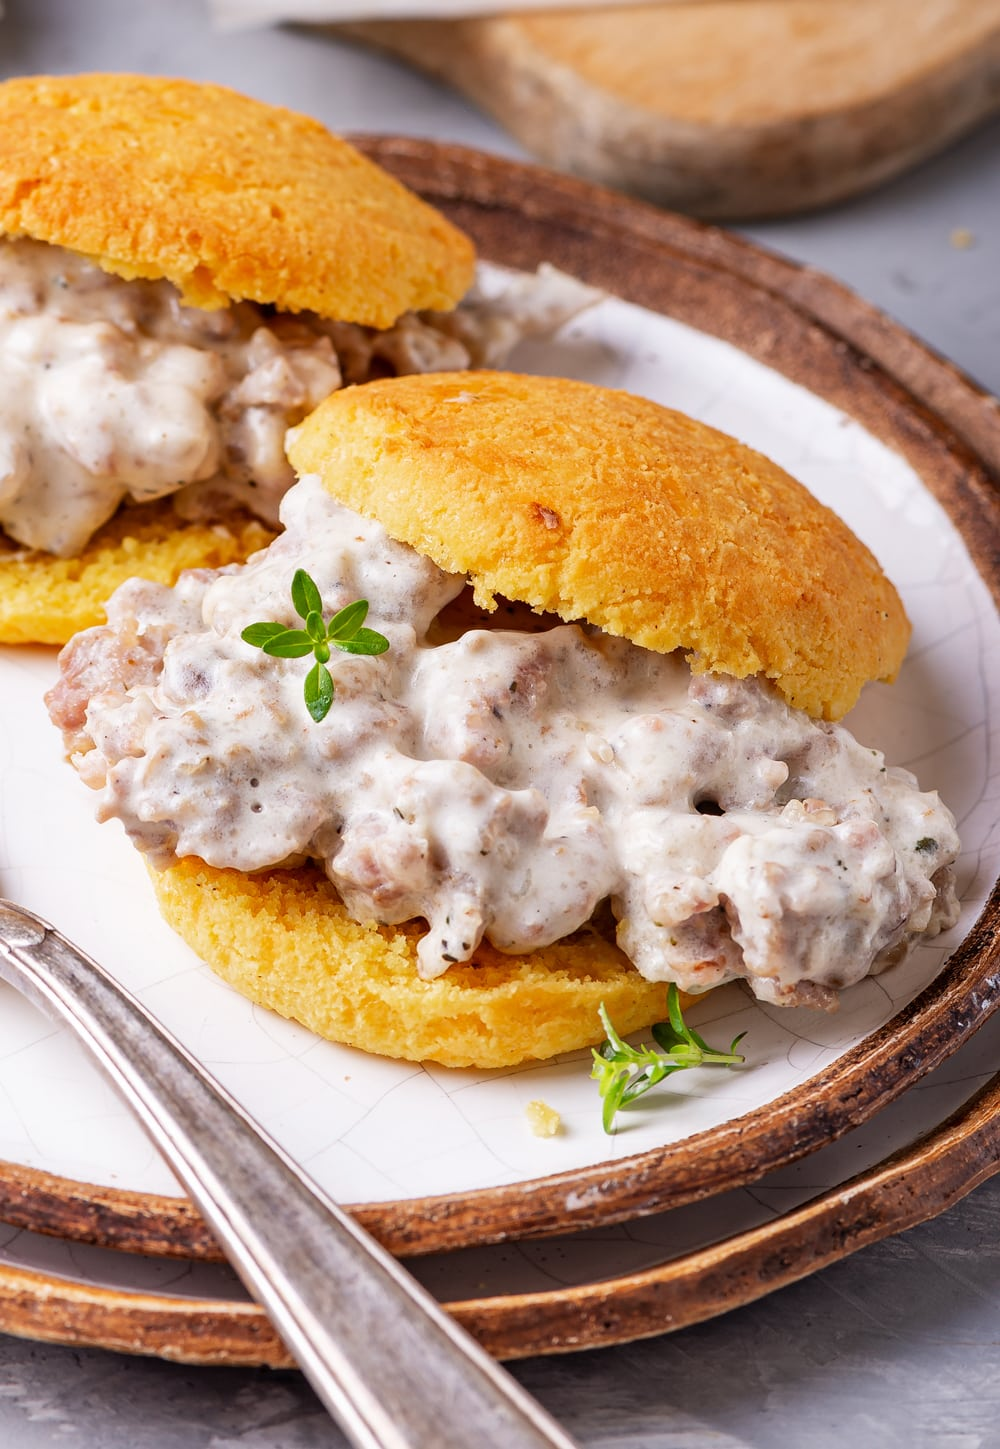 A biscuit and gravy sandwich on a plate.